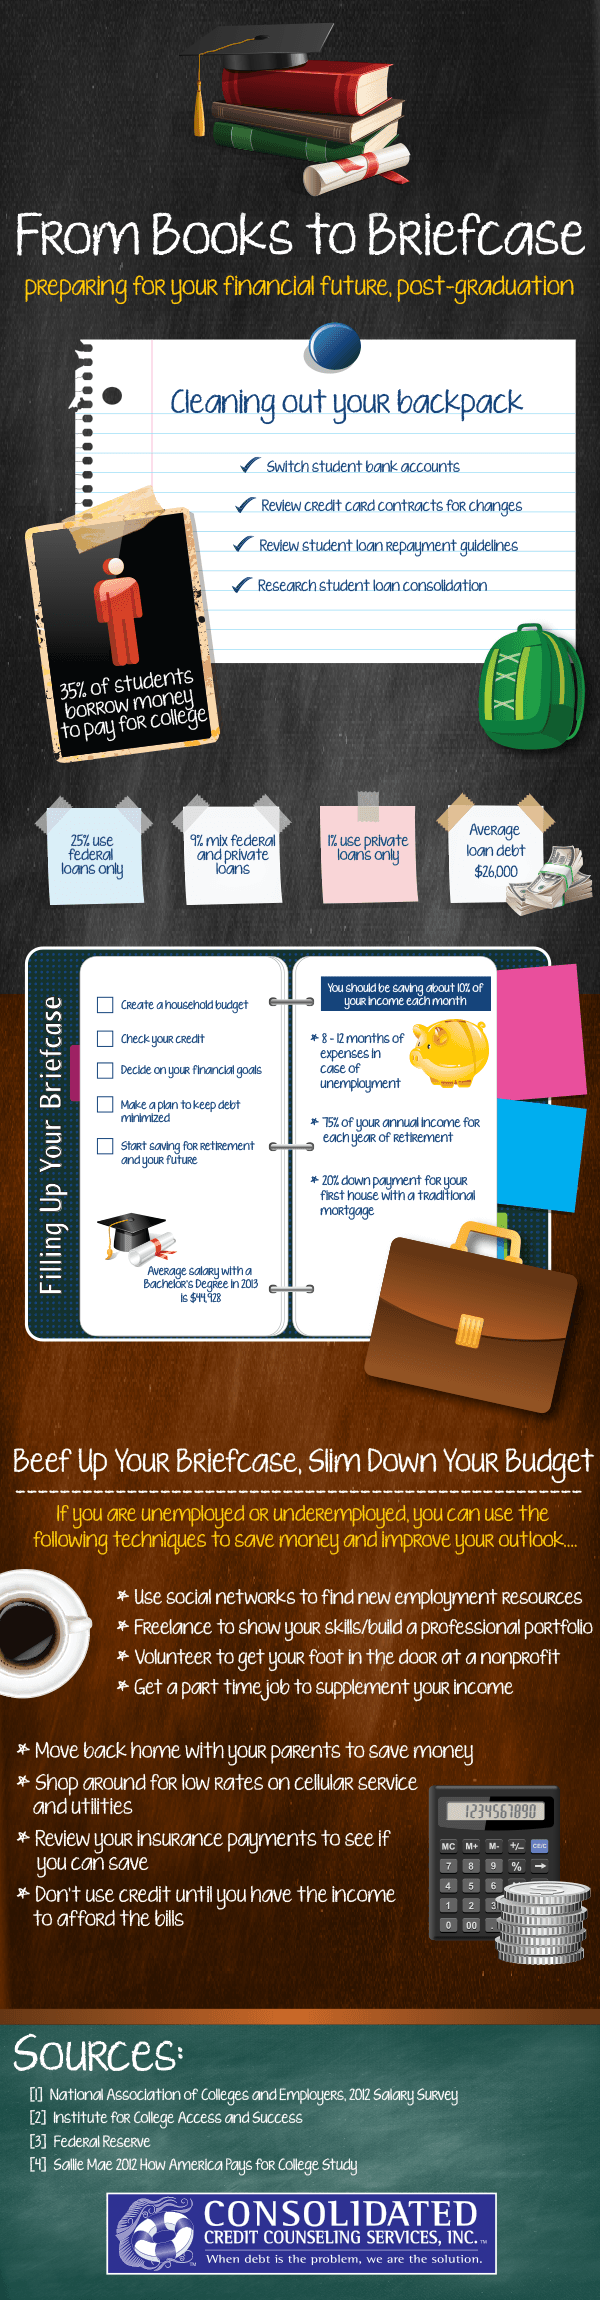 Prepare For Your Financial Future After Graduation